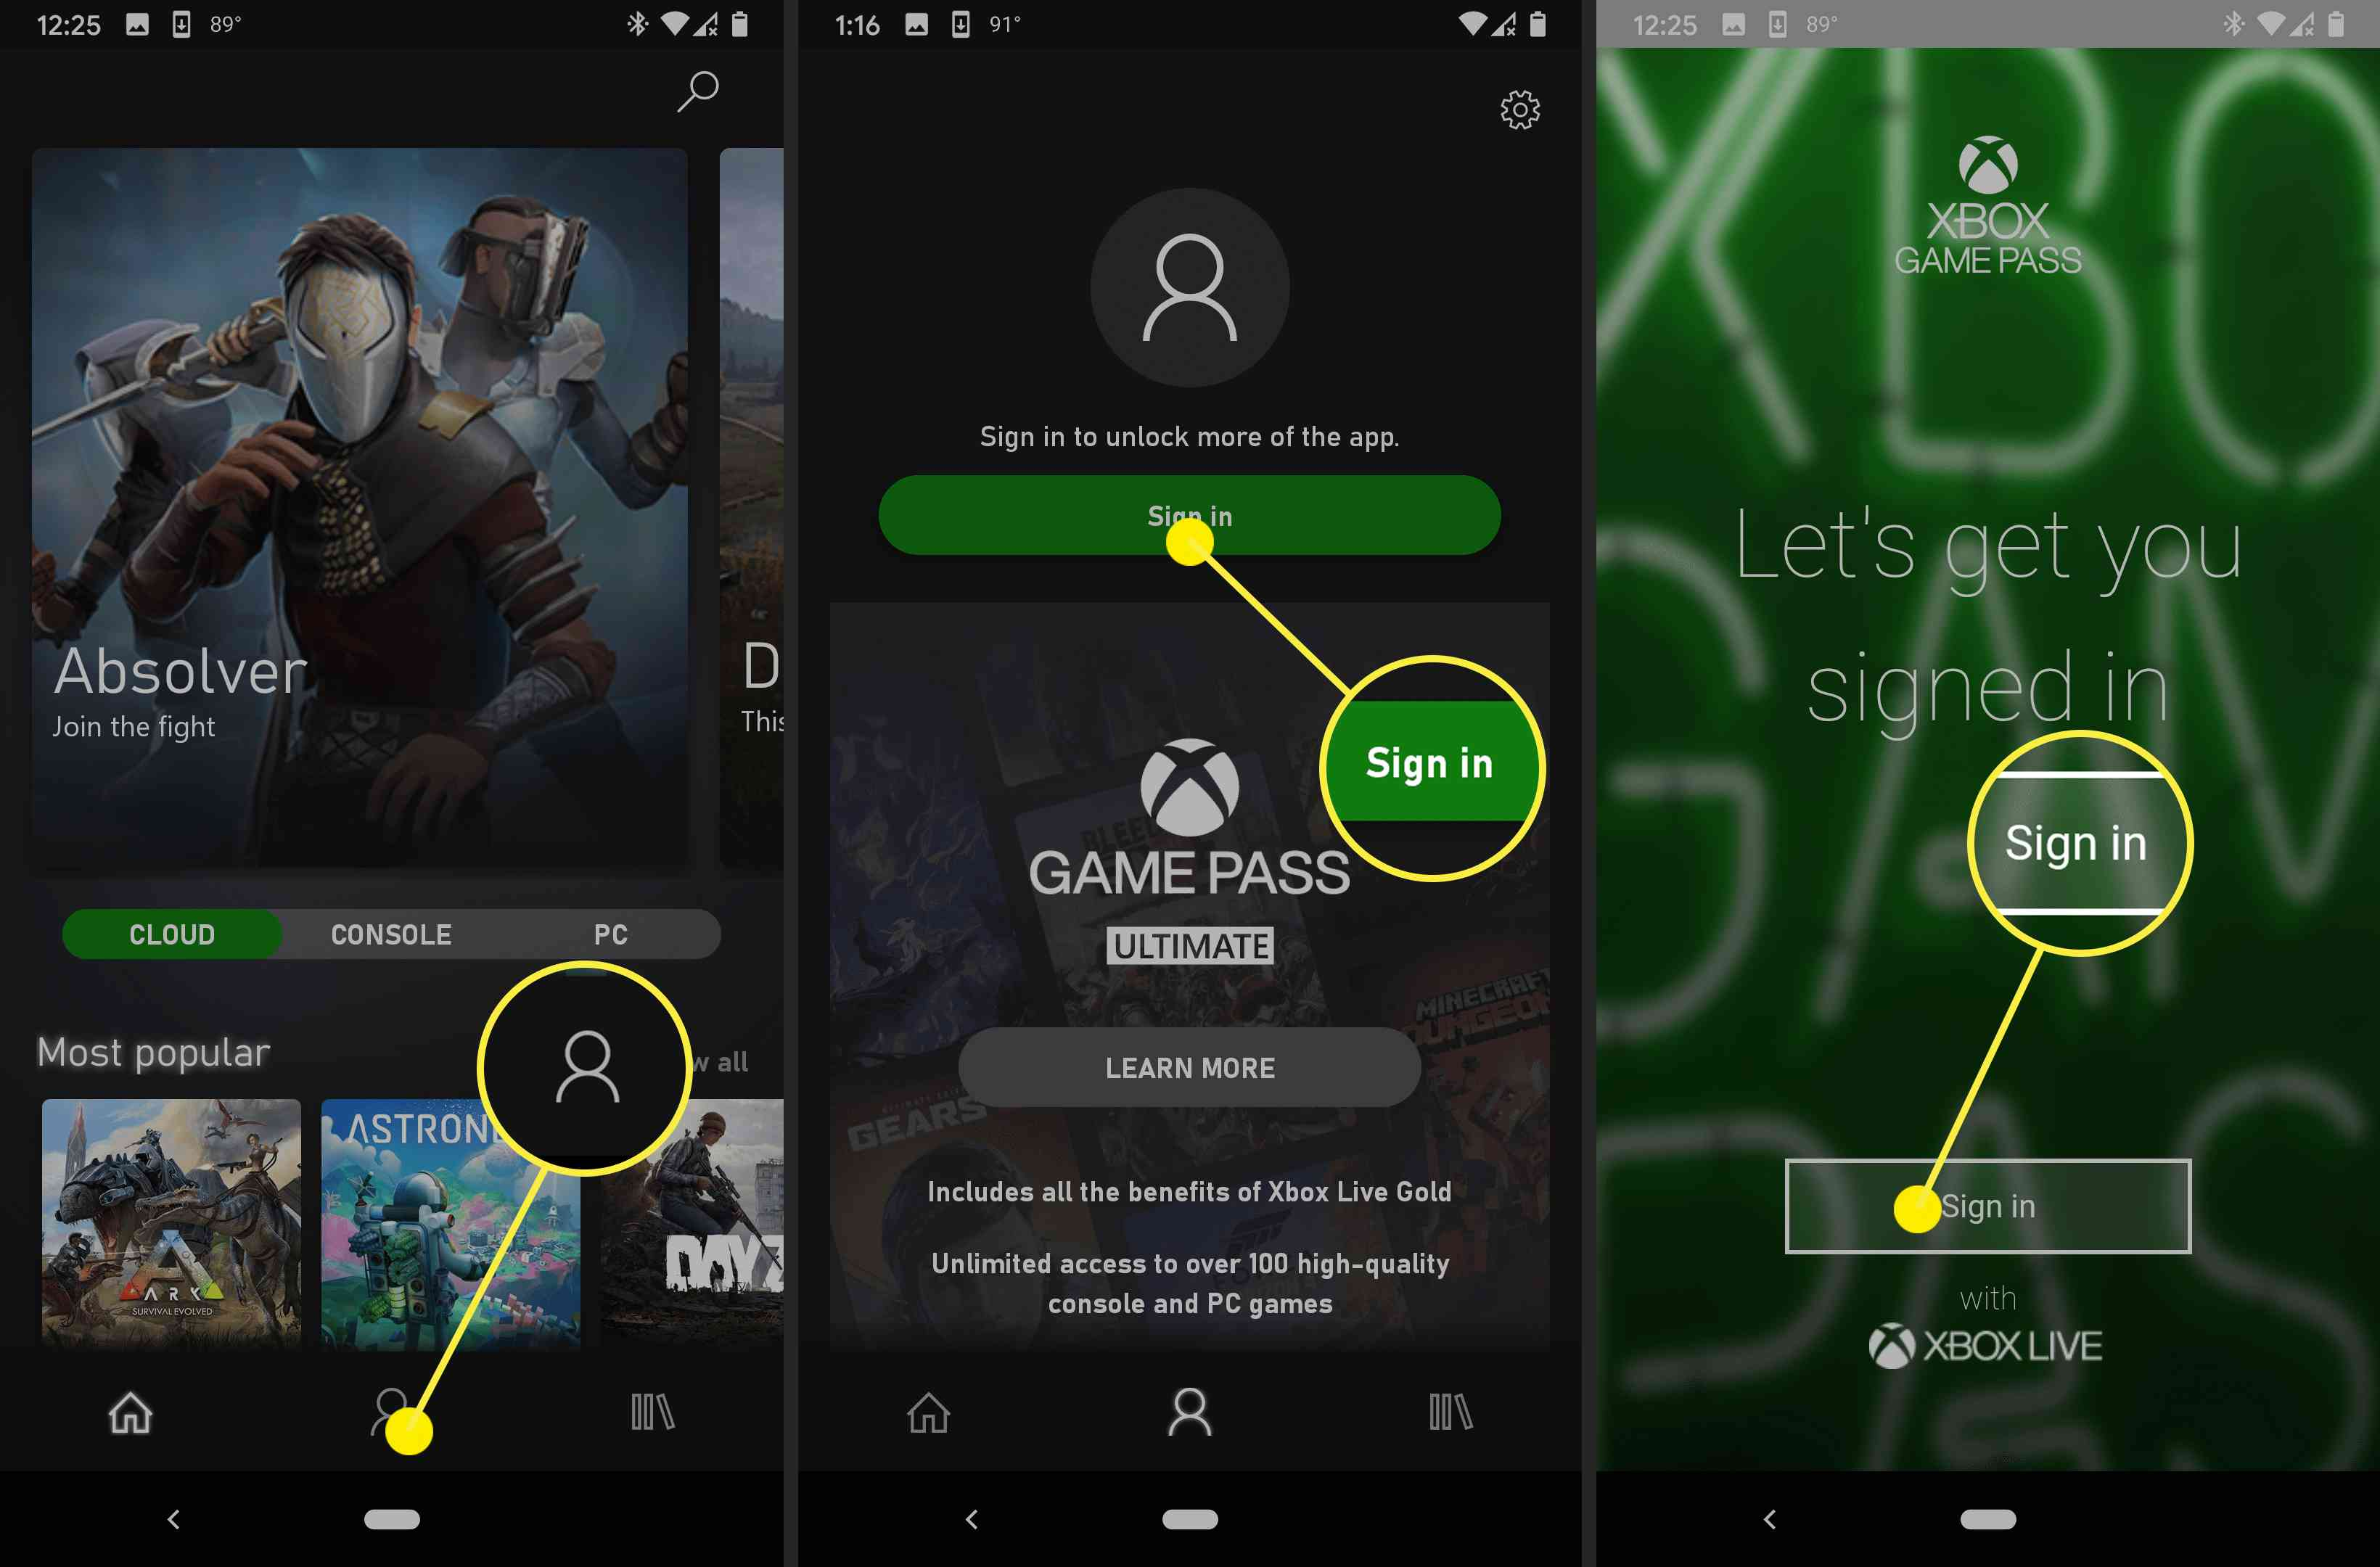 Screenshots of signing in to stream with Xbox Gamepass